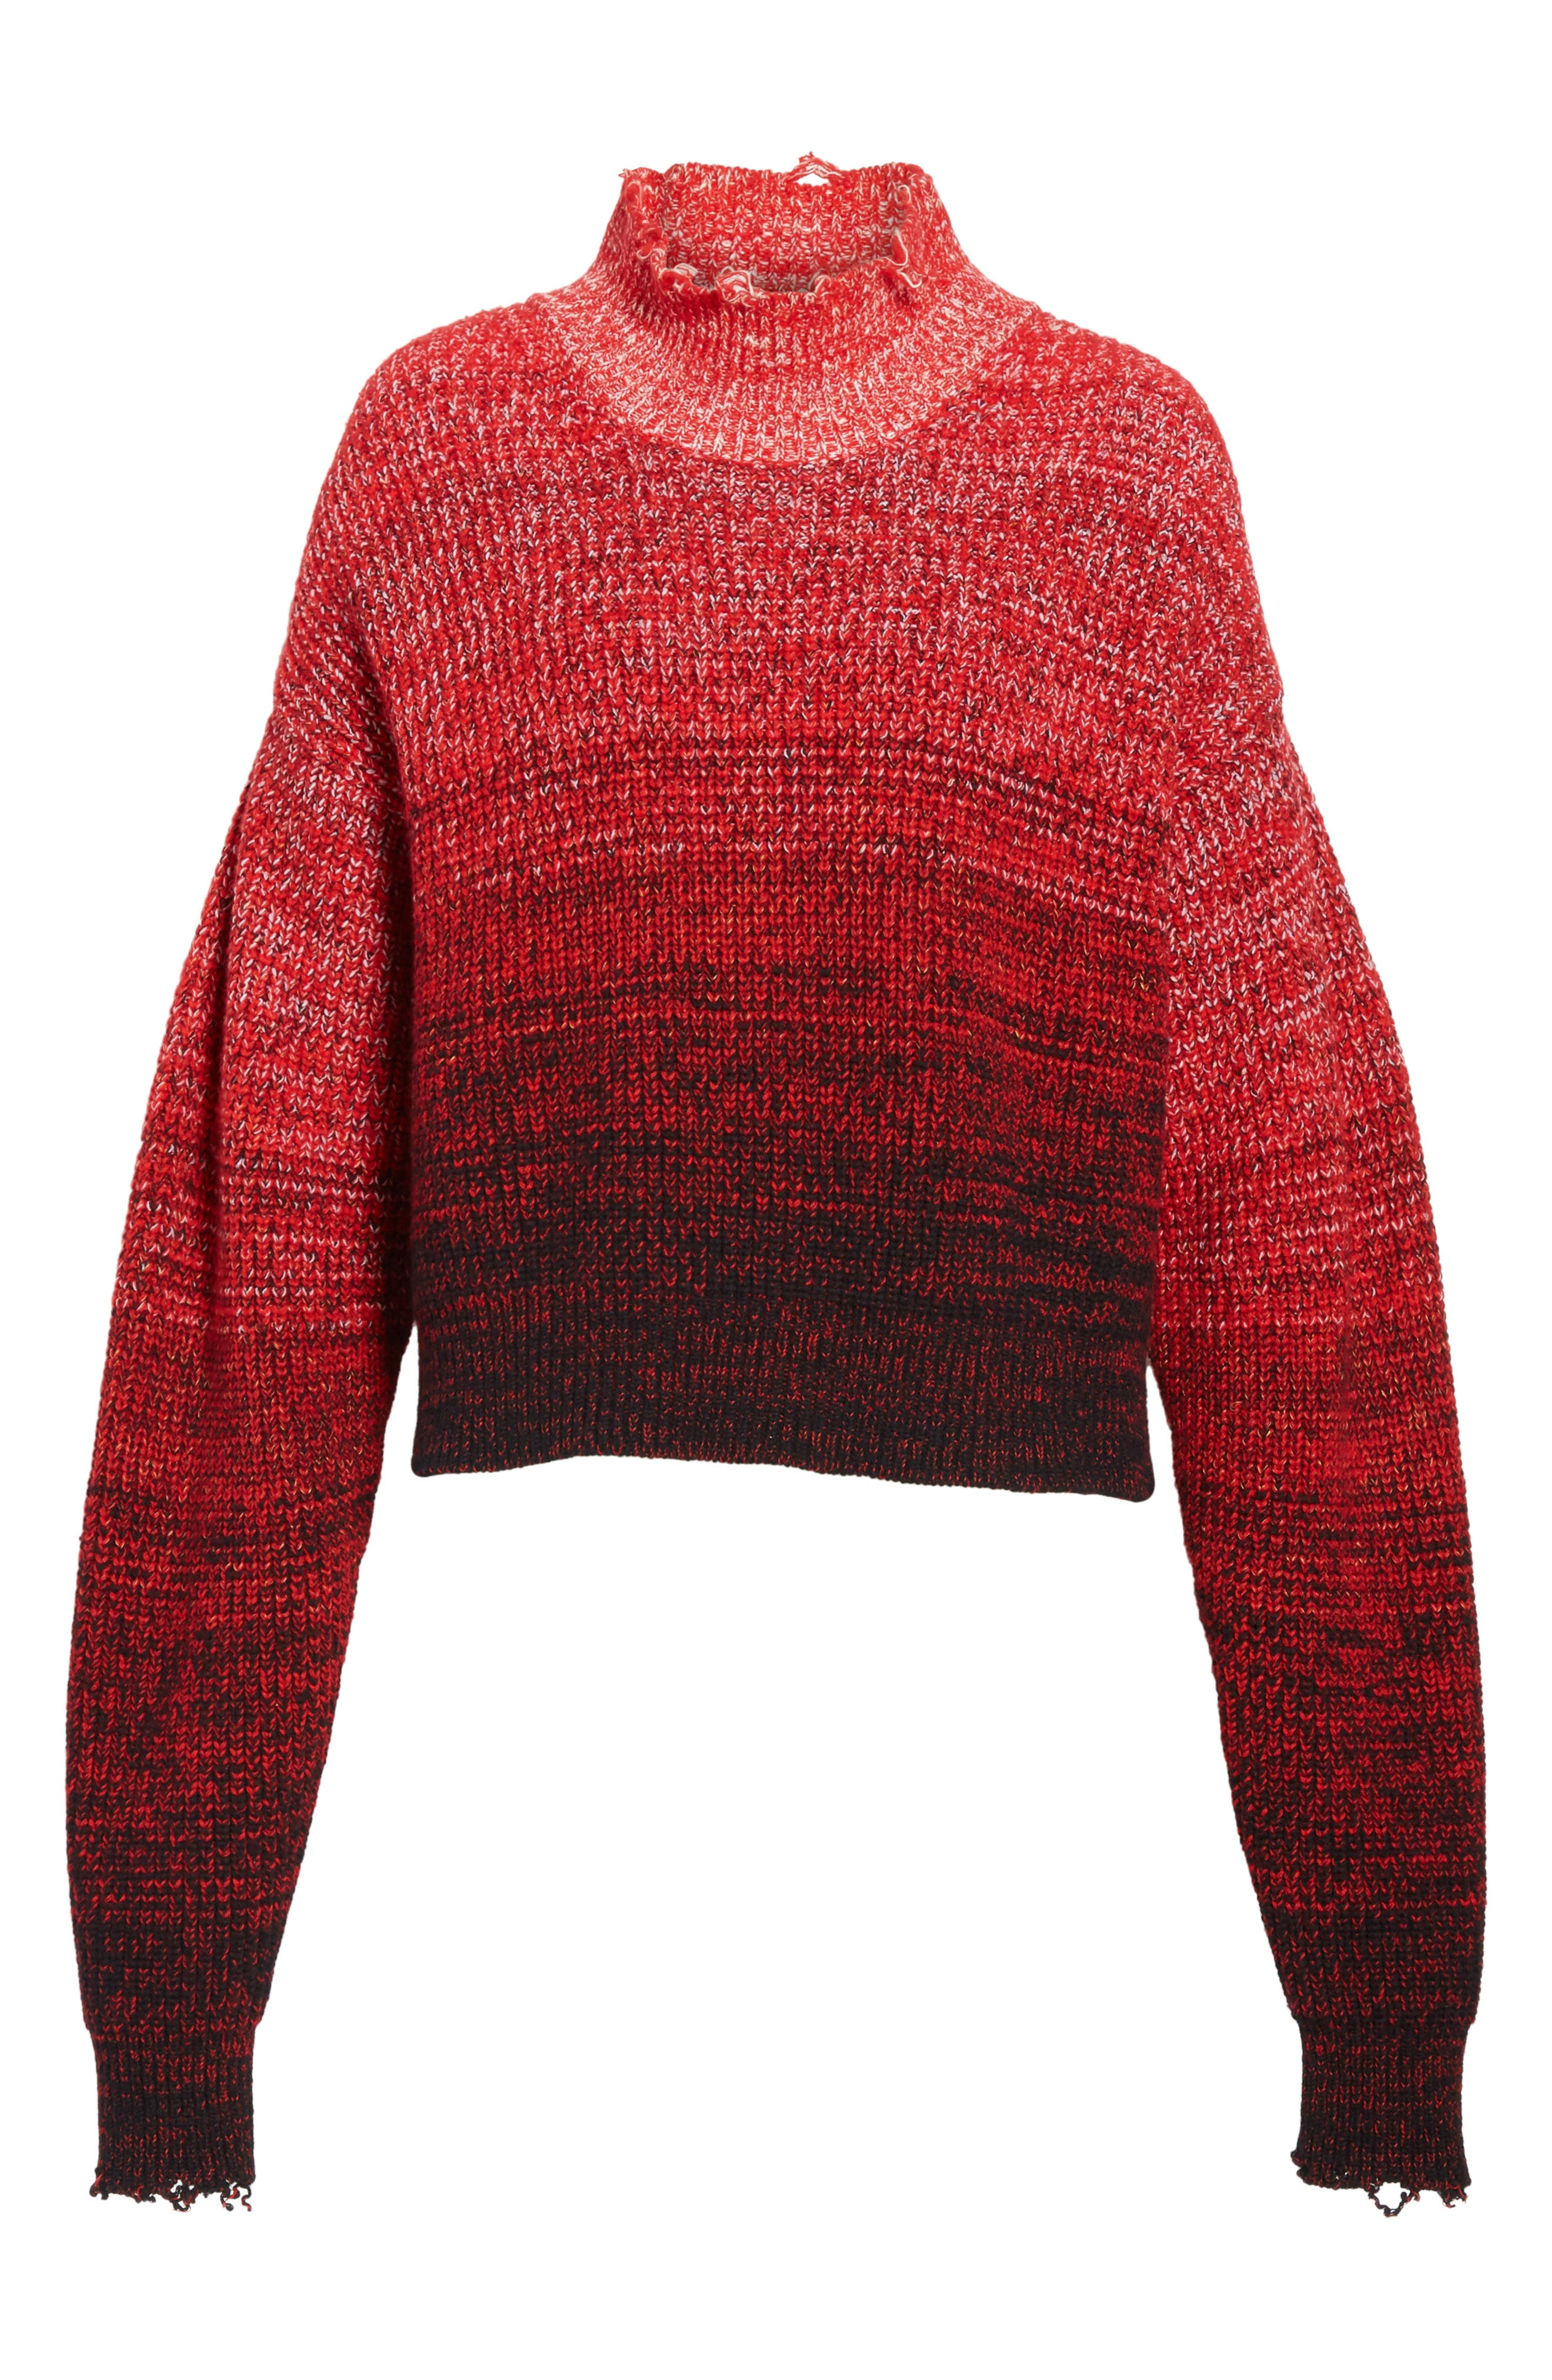 Distressed Marled Patchwork Turtleneck Sweater,                             Alternate thumbnail 6, color,                             641